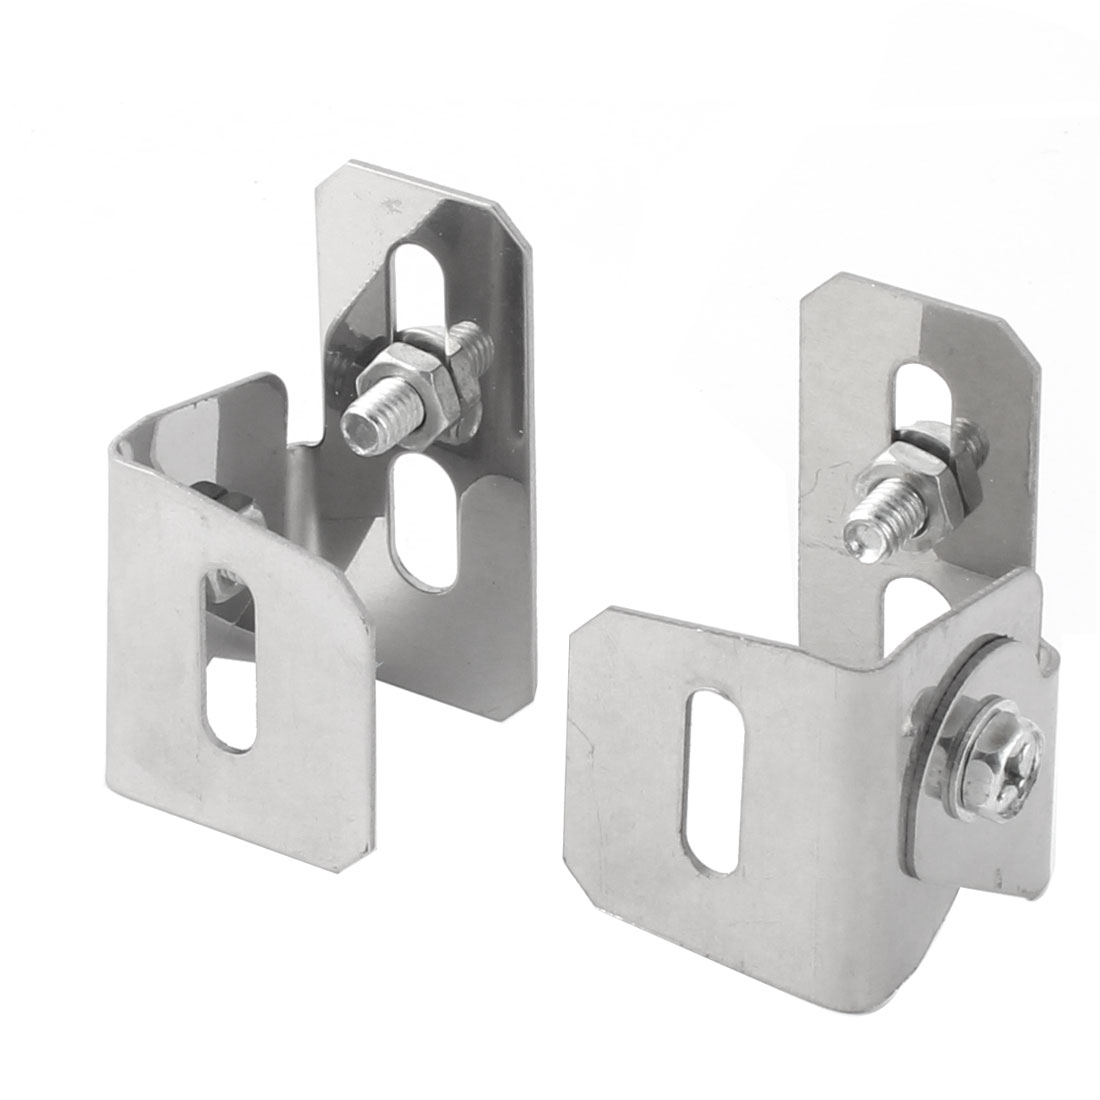 Auto Car Alloy Adjustable Plate License Frame Fixing Bracket Holder Silver Tone Pair